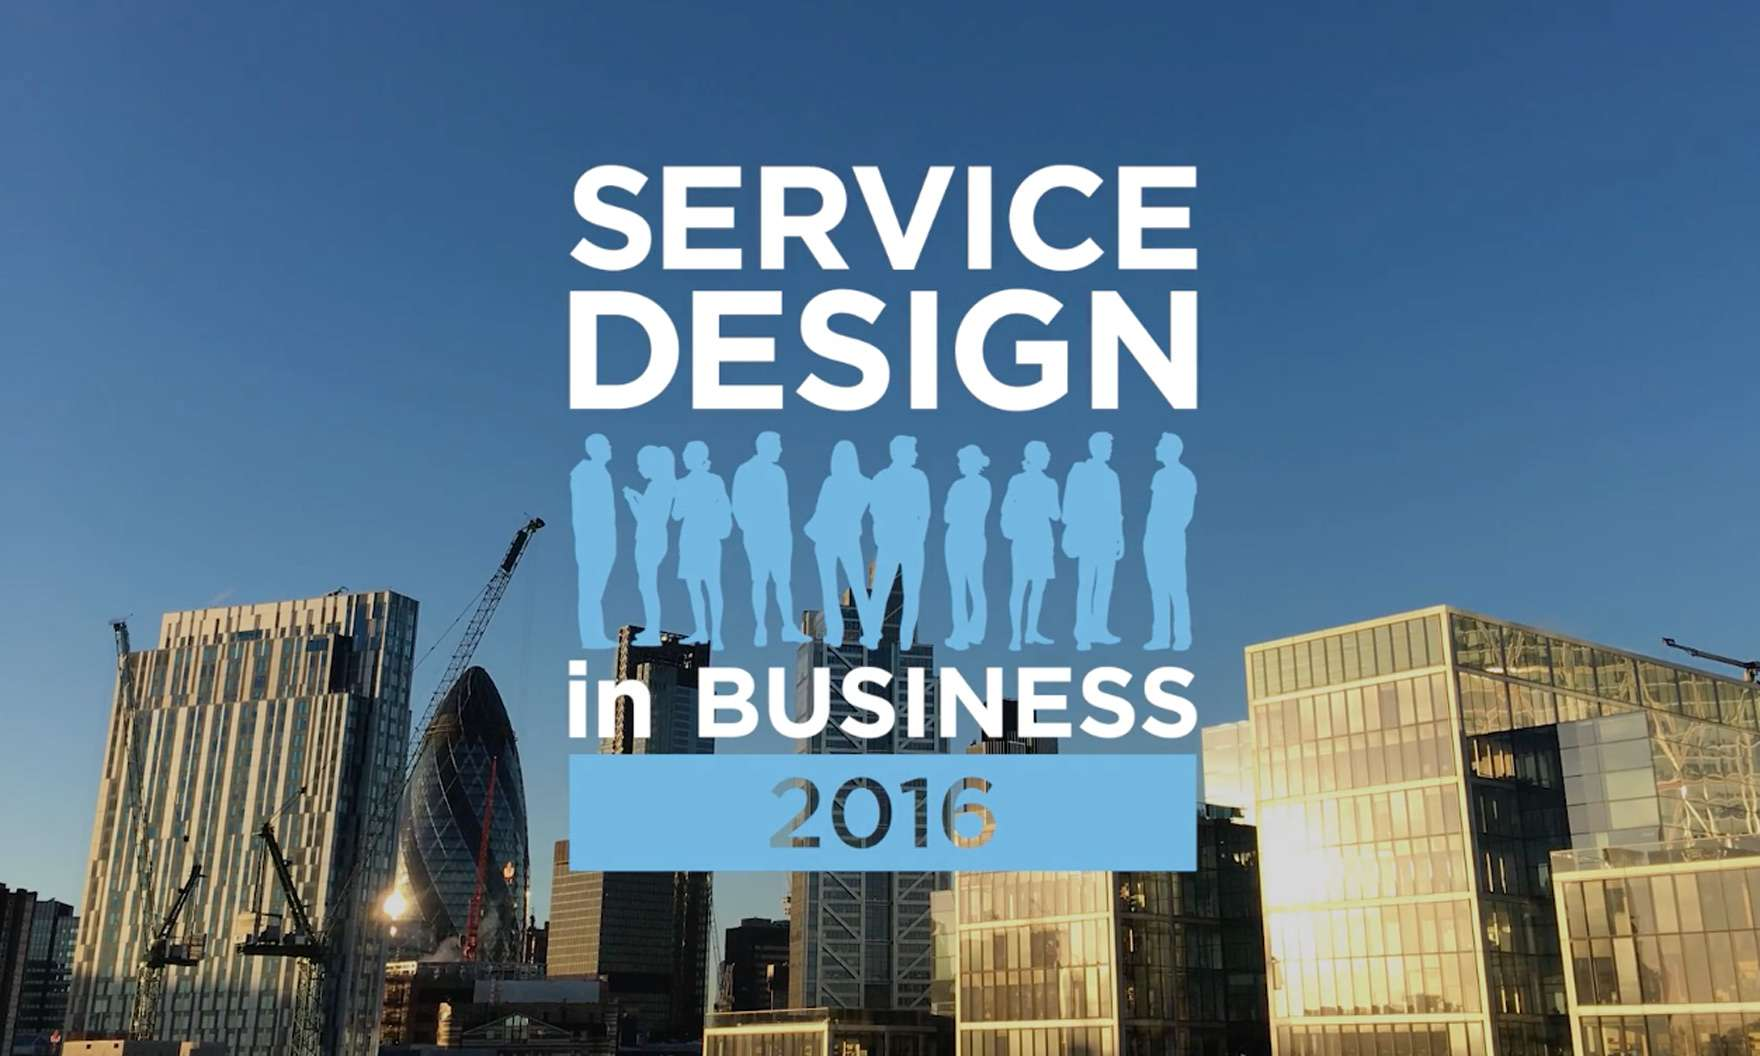 Service Design in Business conference